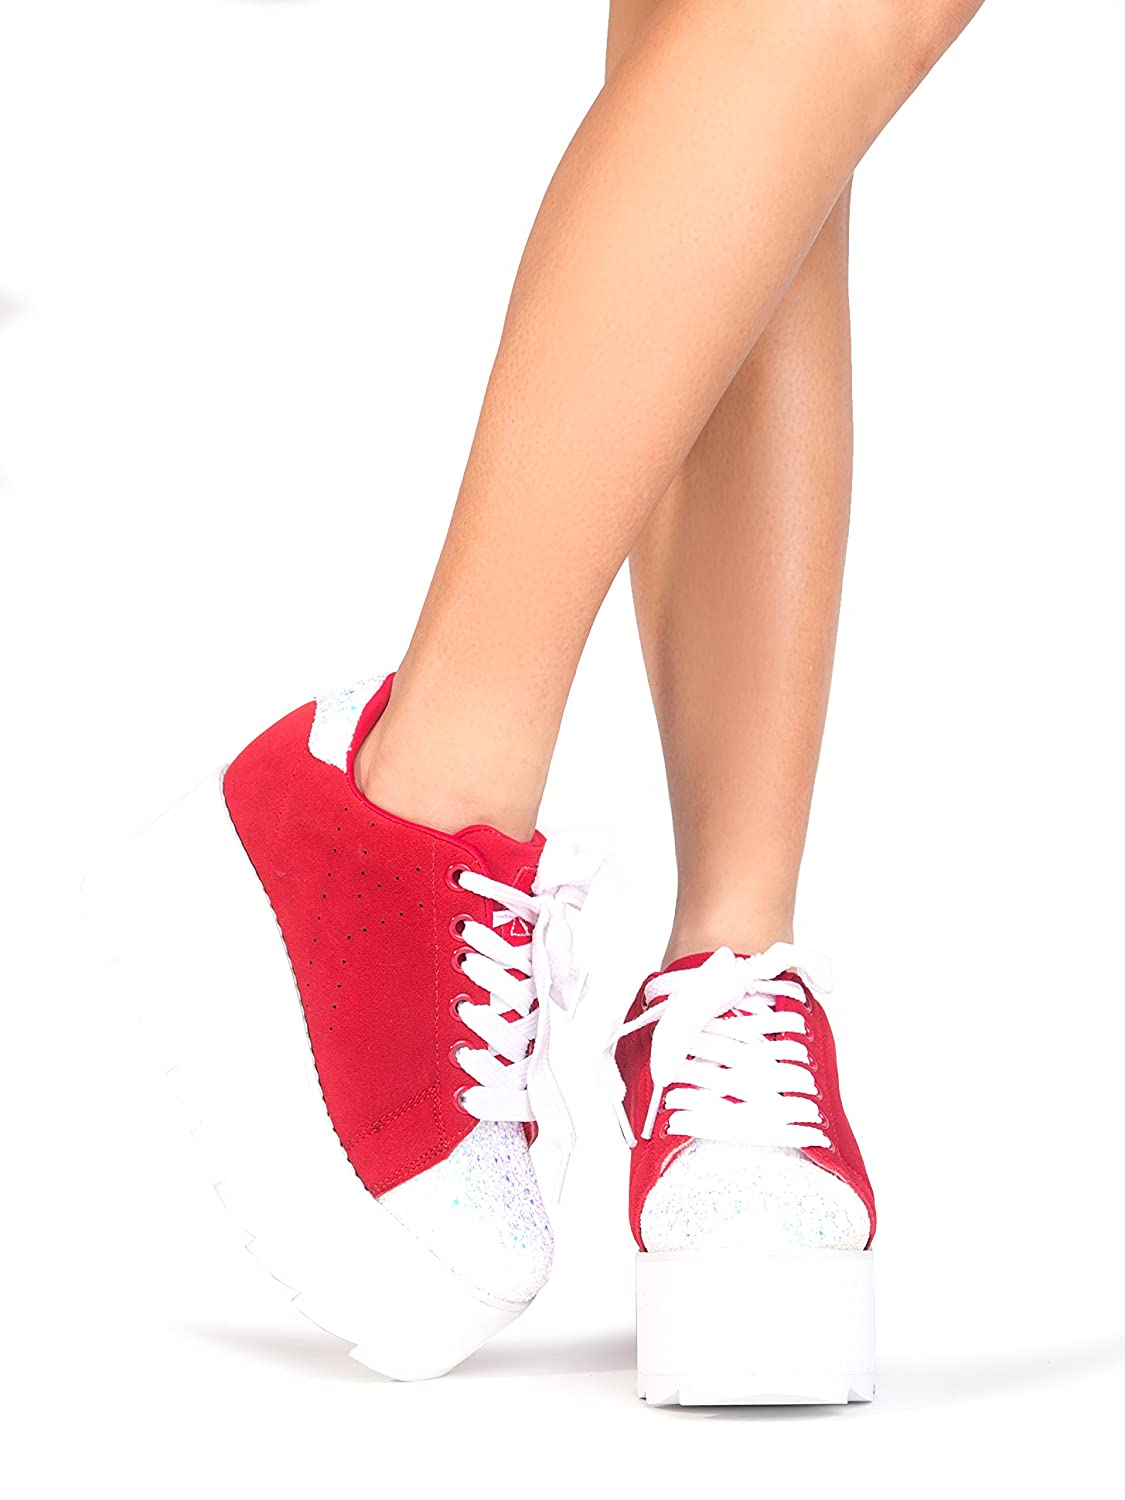 YRU Lala Casual Platform Sneaker - High Rave Flatform Closed Round Toe Creepers B07BFL265T 9 M US|Red Suede